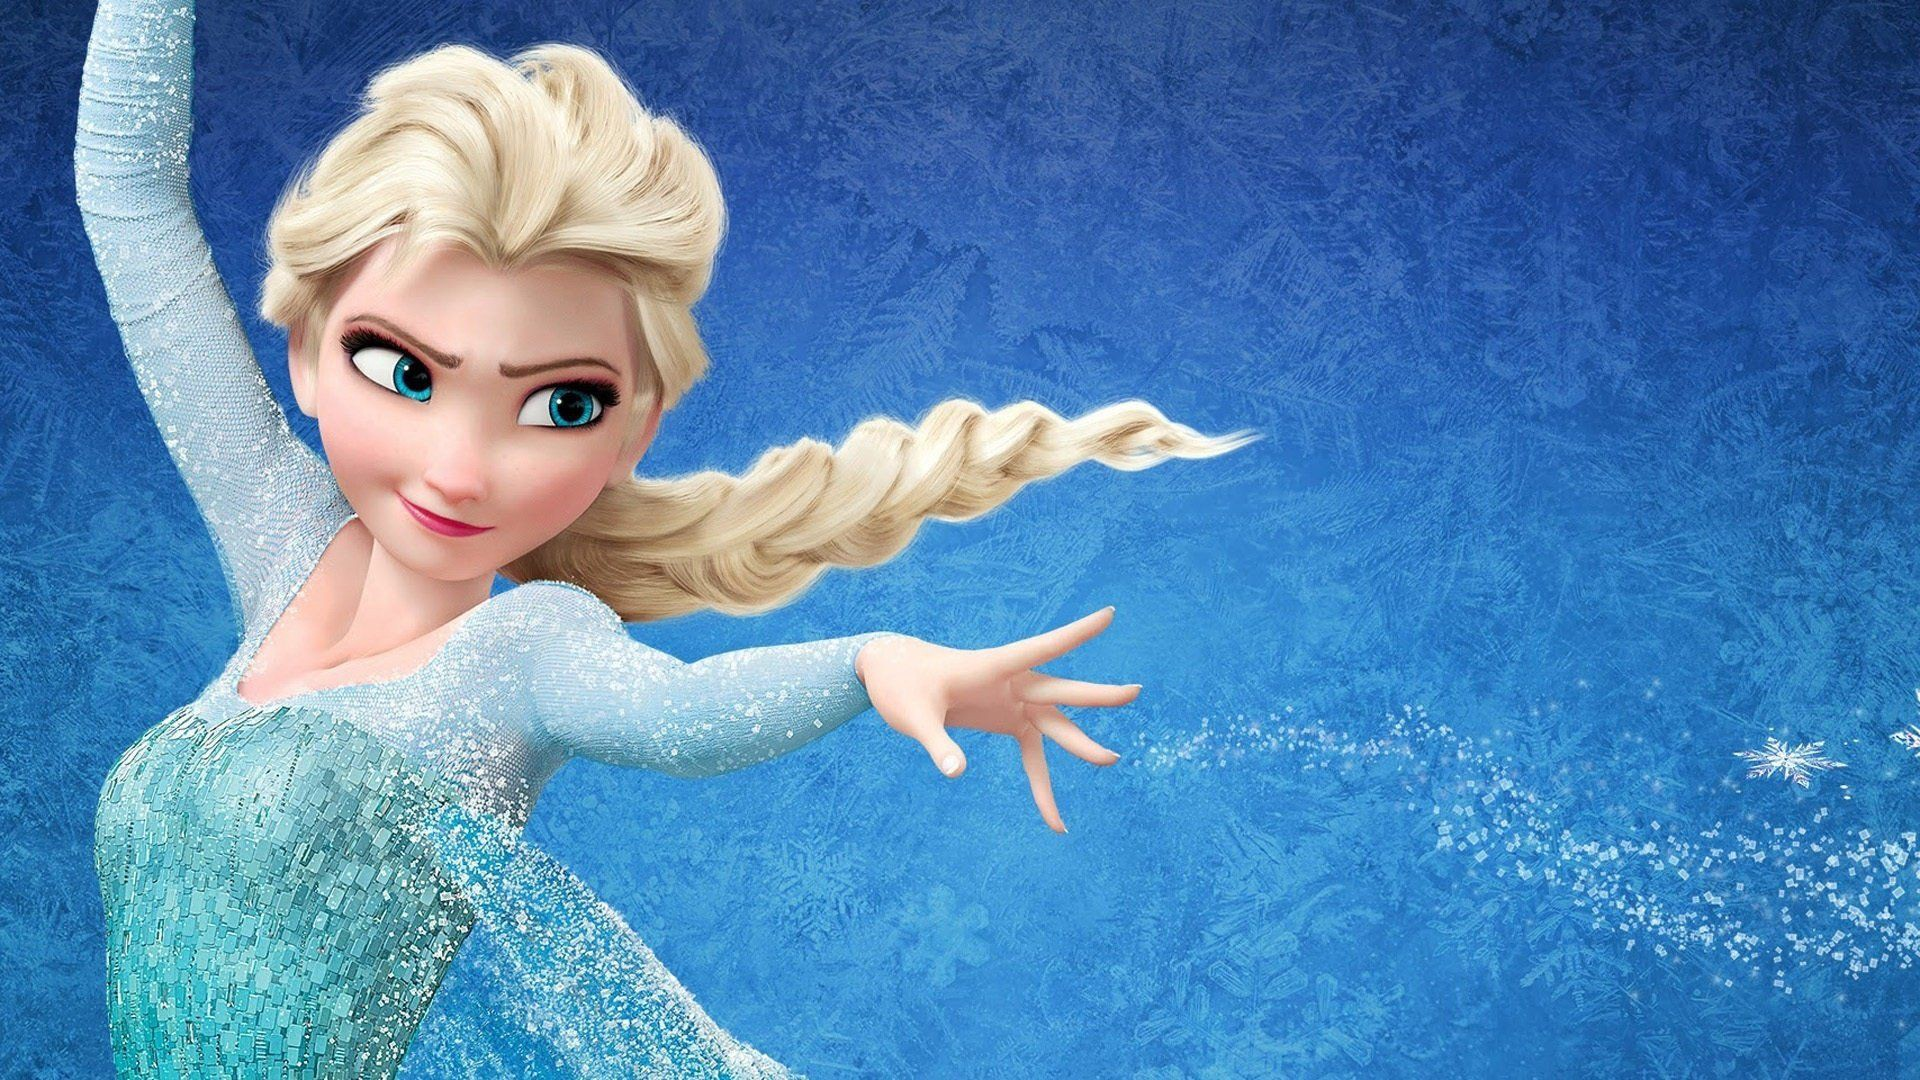 Privacy Is Frozen Let It Go The Startup Medium